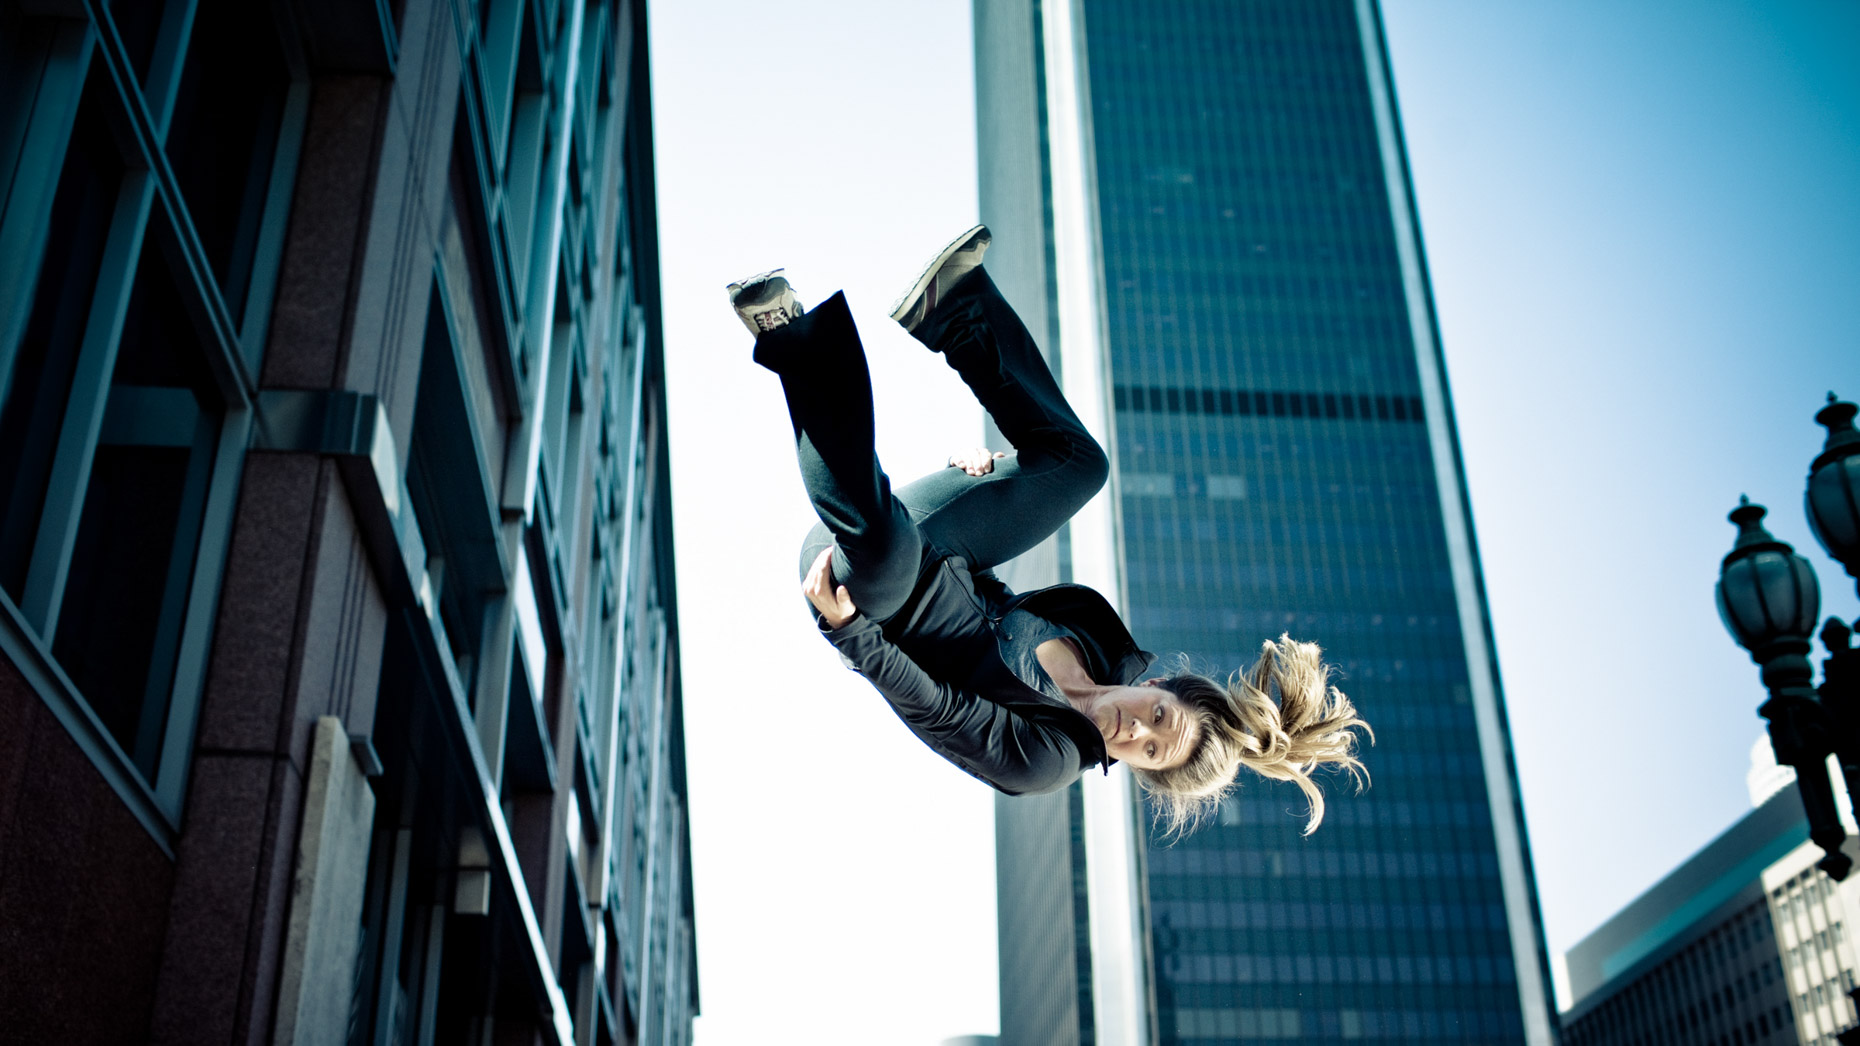 Professional stuntwoman Luci Romberg by Professional sport photographer Andy Batt.